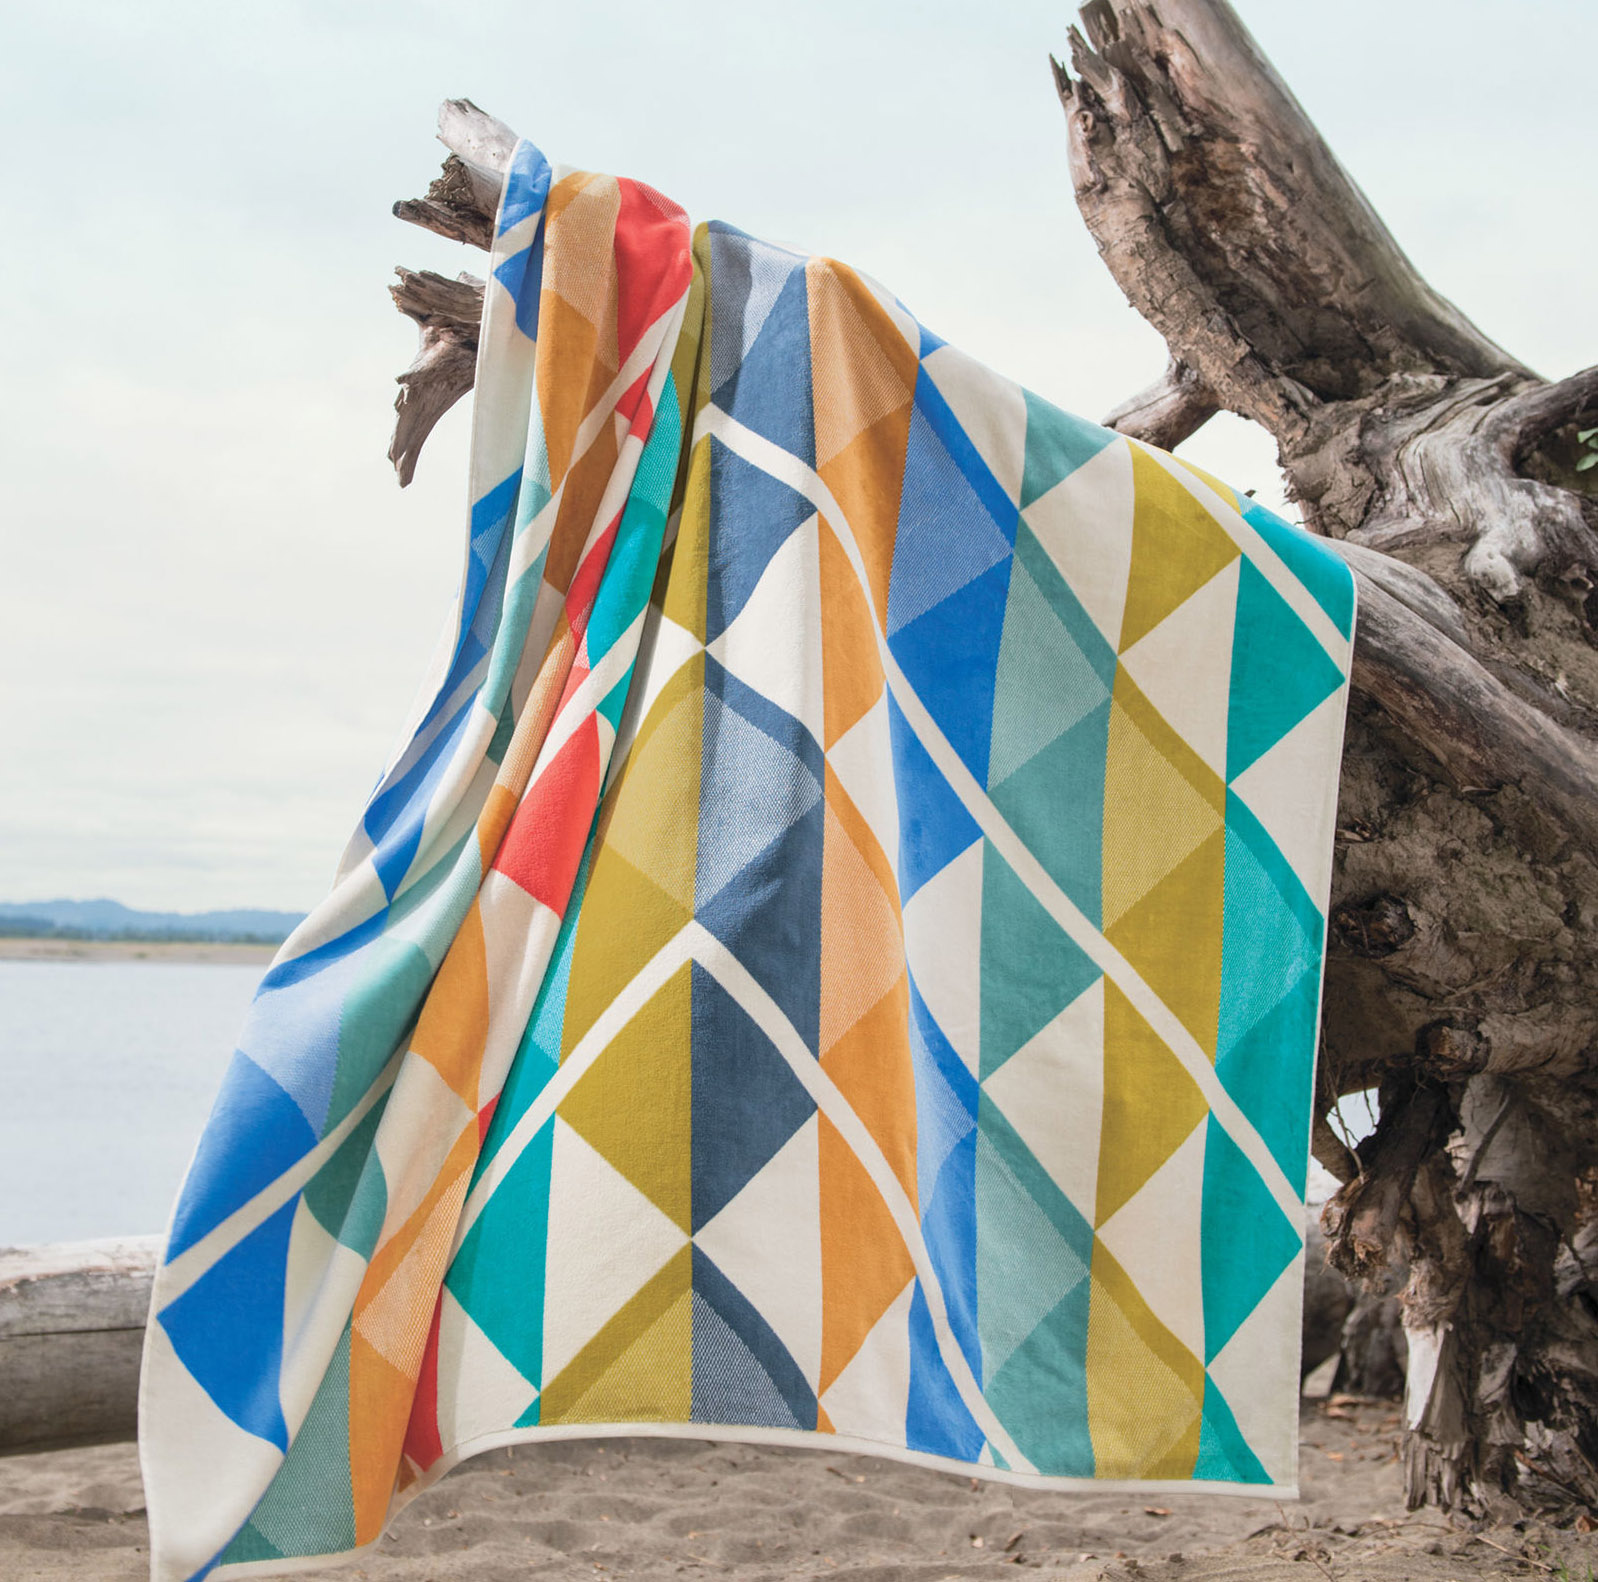 A Pendleton geometric spa towel hangs on a piece of driftwood on the seashore.